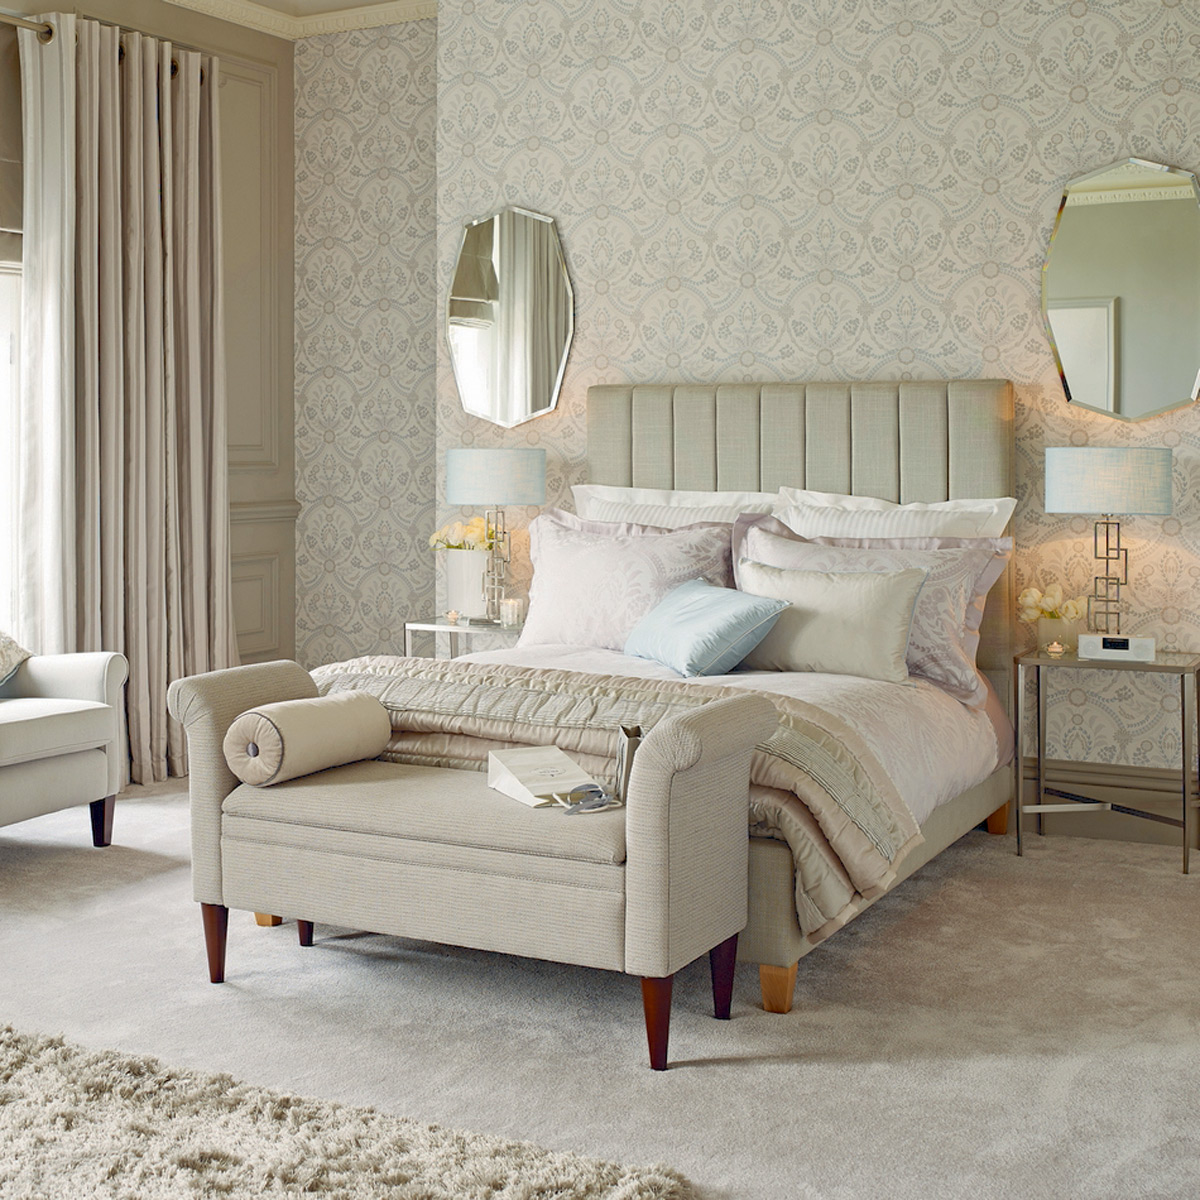 5 Of The Best Bedrooms